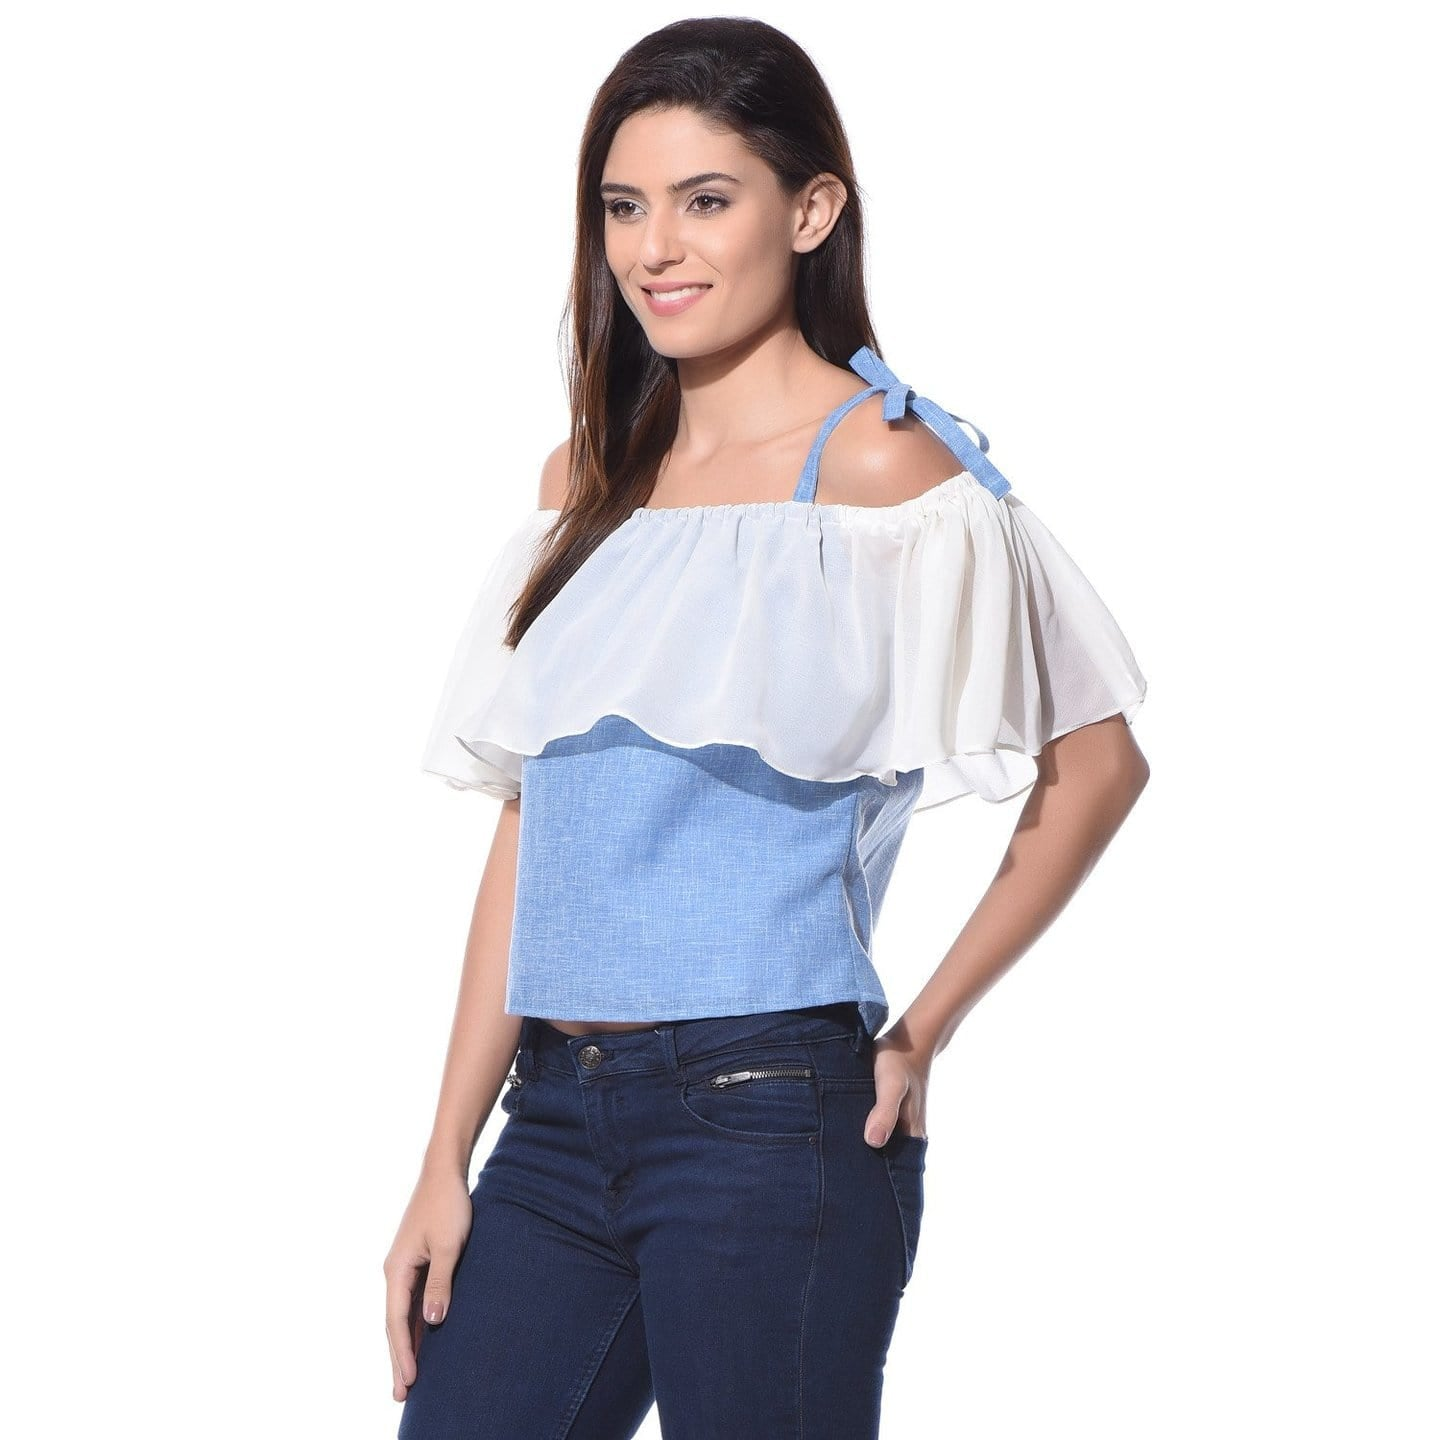 d9ea5f46e40 Denim Top, Off Shoulder Top, Tie Up Top, Denim Tie-up Top – Uptownie